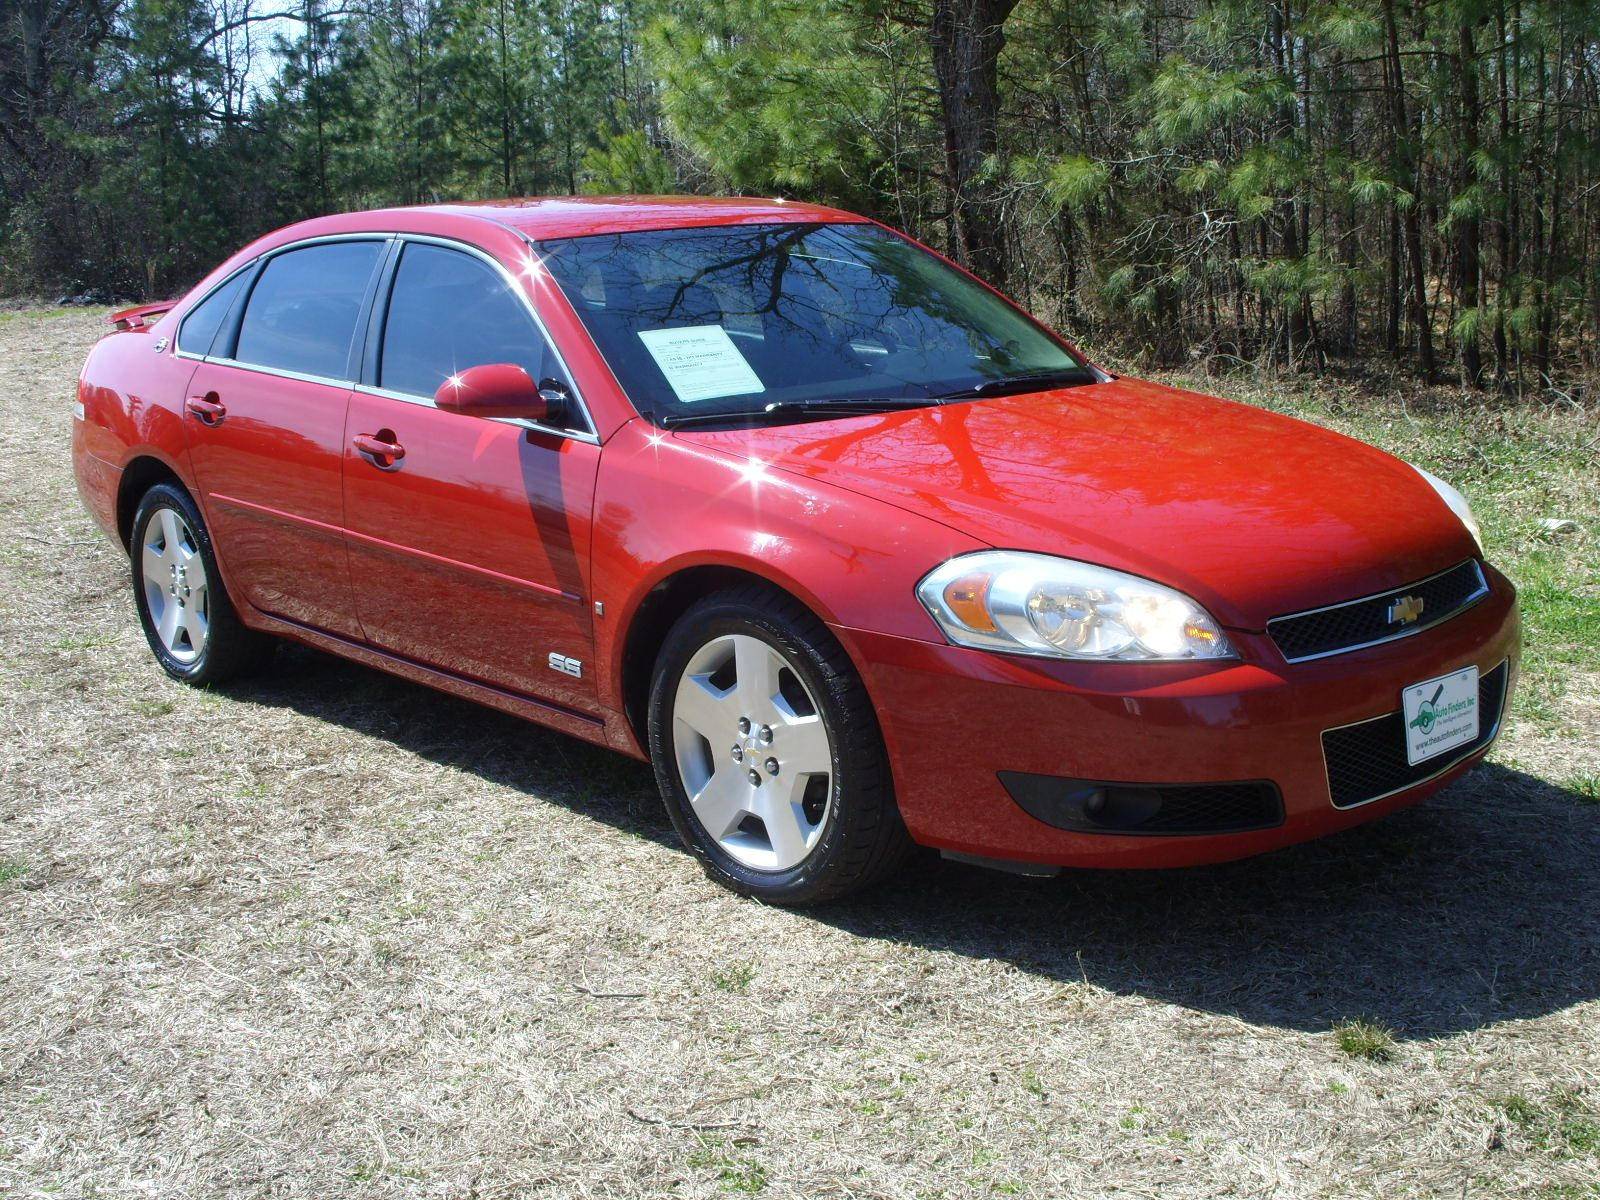 used 2008 chevrolet impala for sale durham nc used 2008 chevrolet impala for sale durham. Black Bedroom Furniture Sets. Home Design Ideas